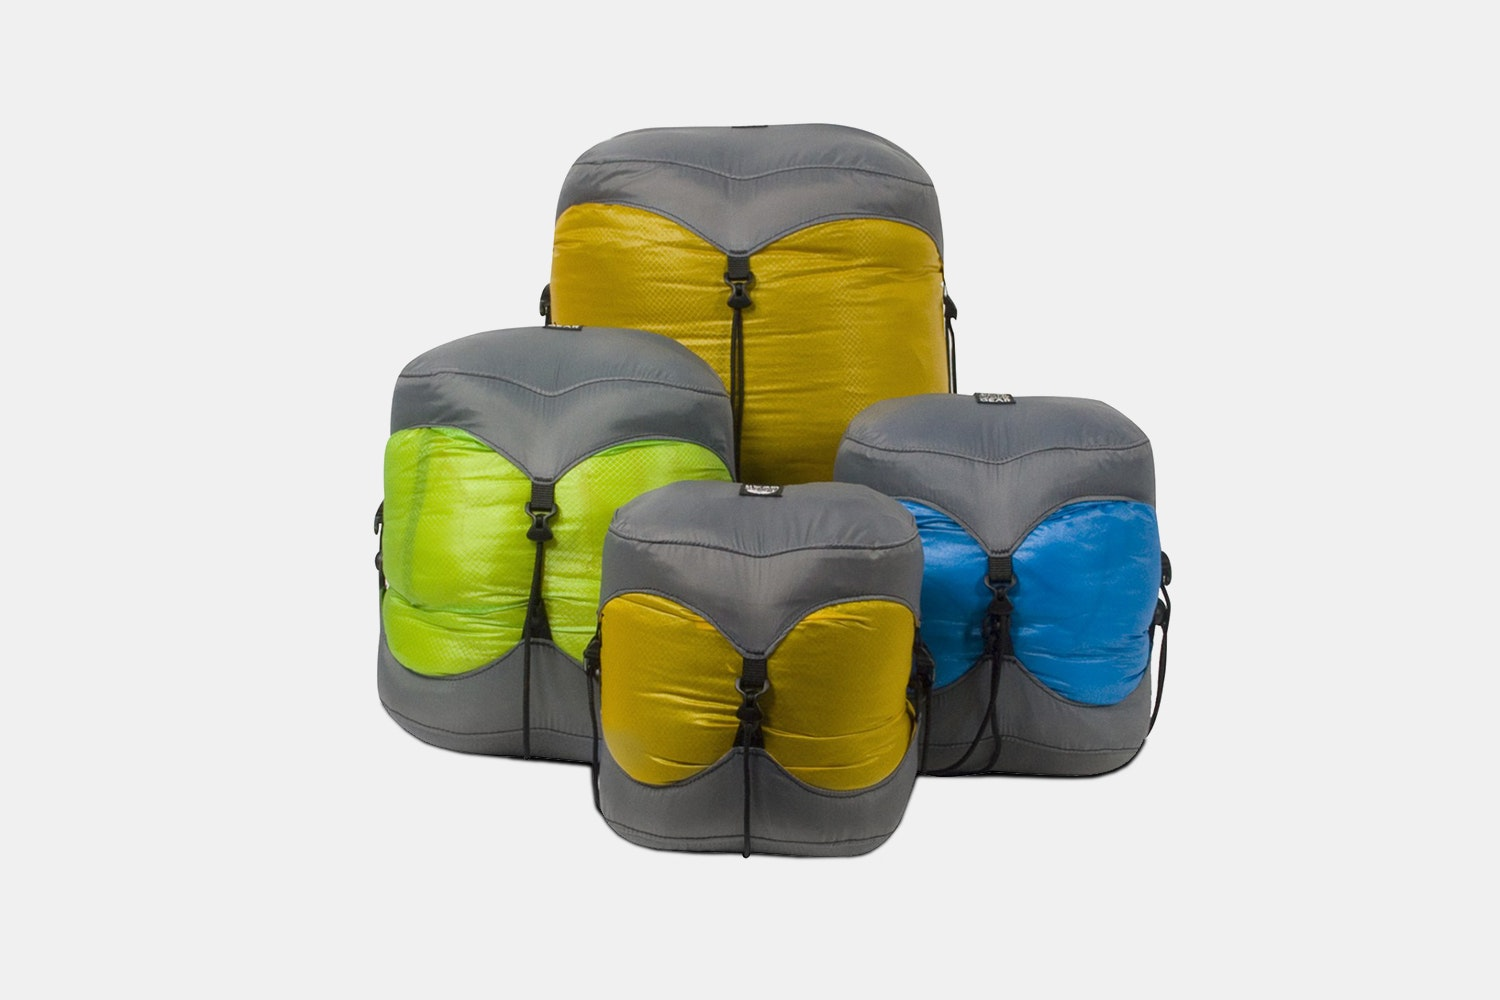 Granite Gear Compression Sacks (2-Pack)